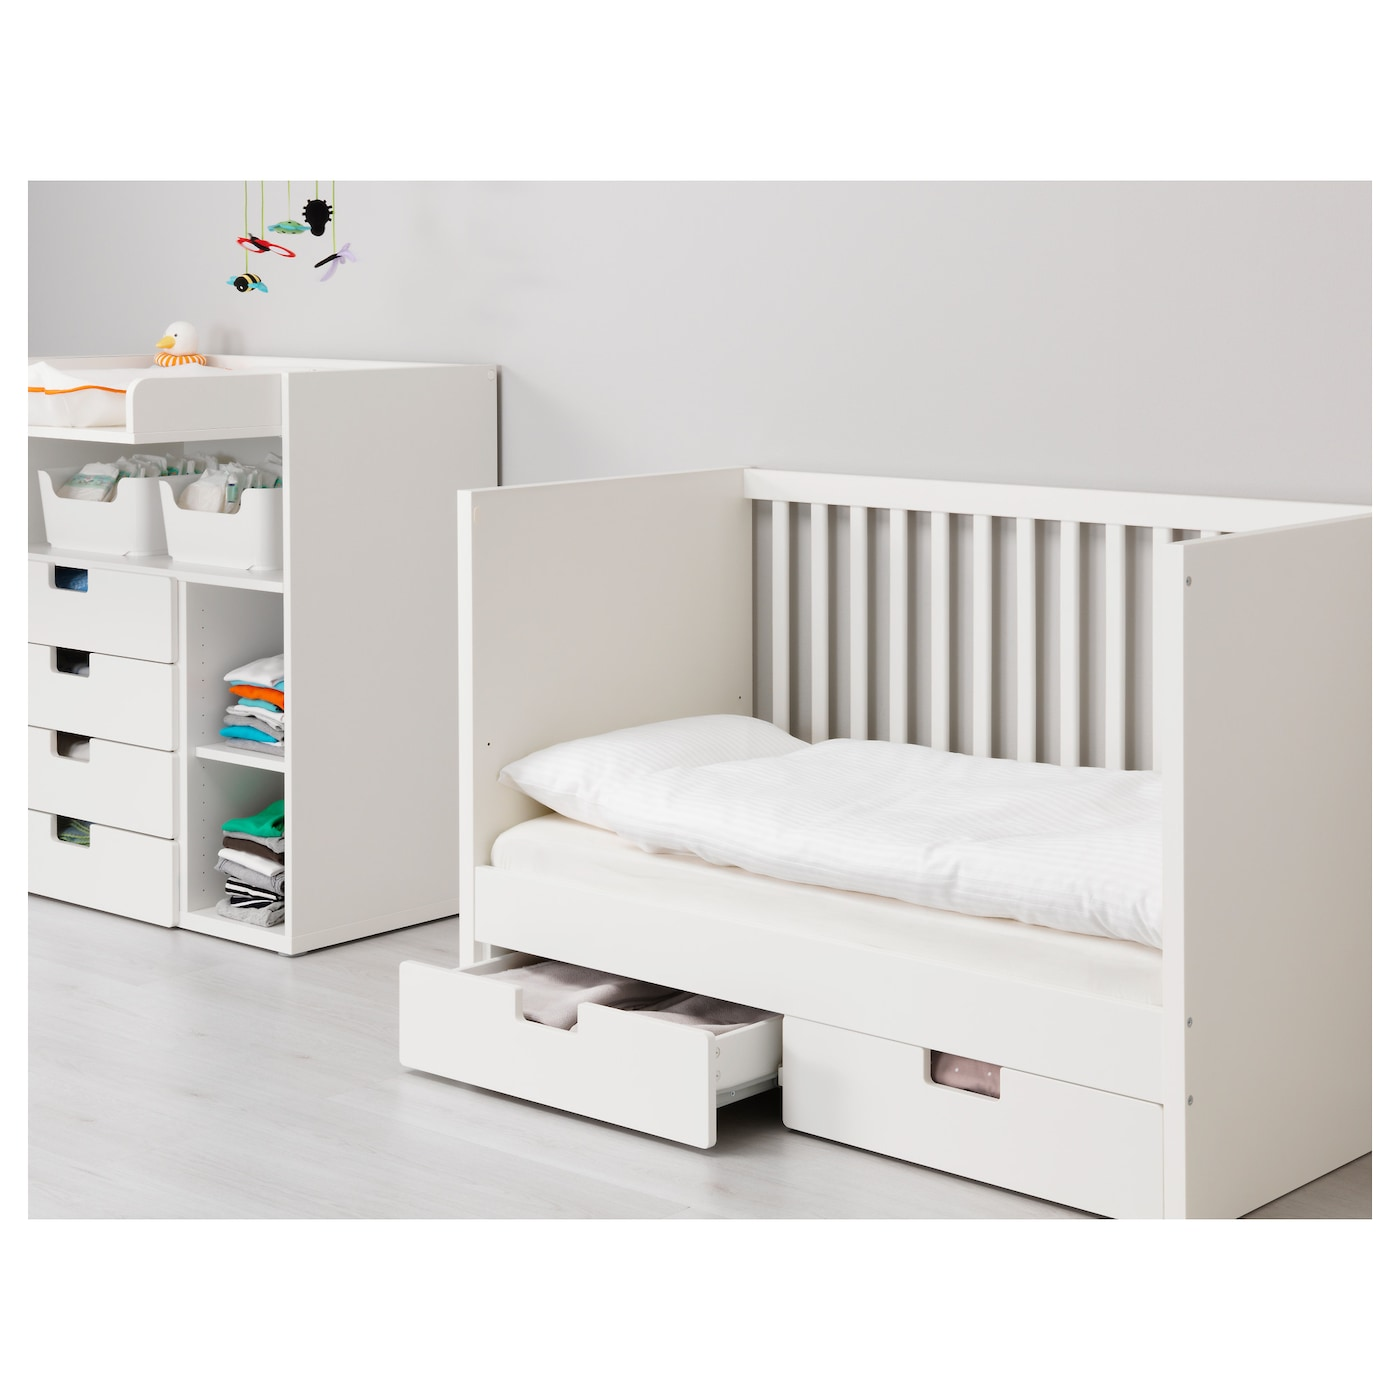 stuva lit enfant tiroirs blanc 60x120 cm ikea. Black Bedroom Furniture Sets. Home Design Ideas